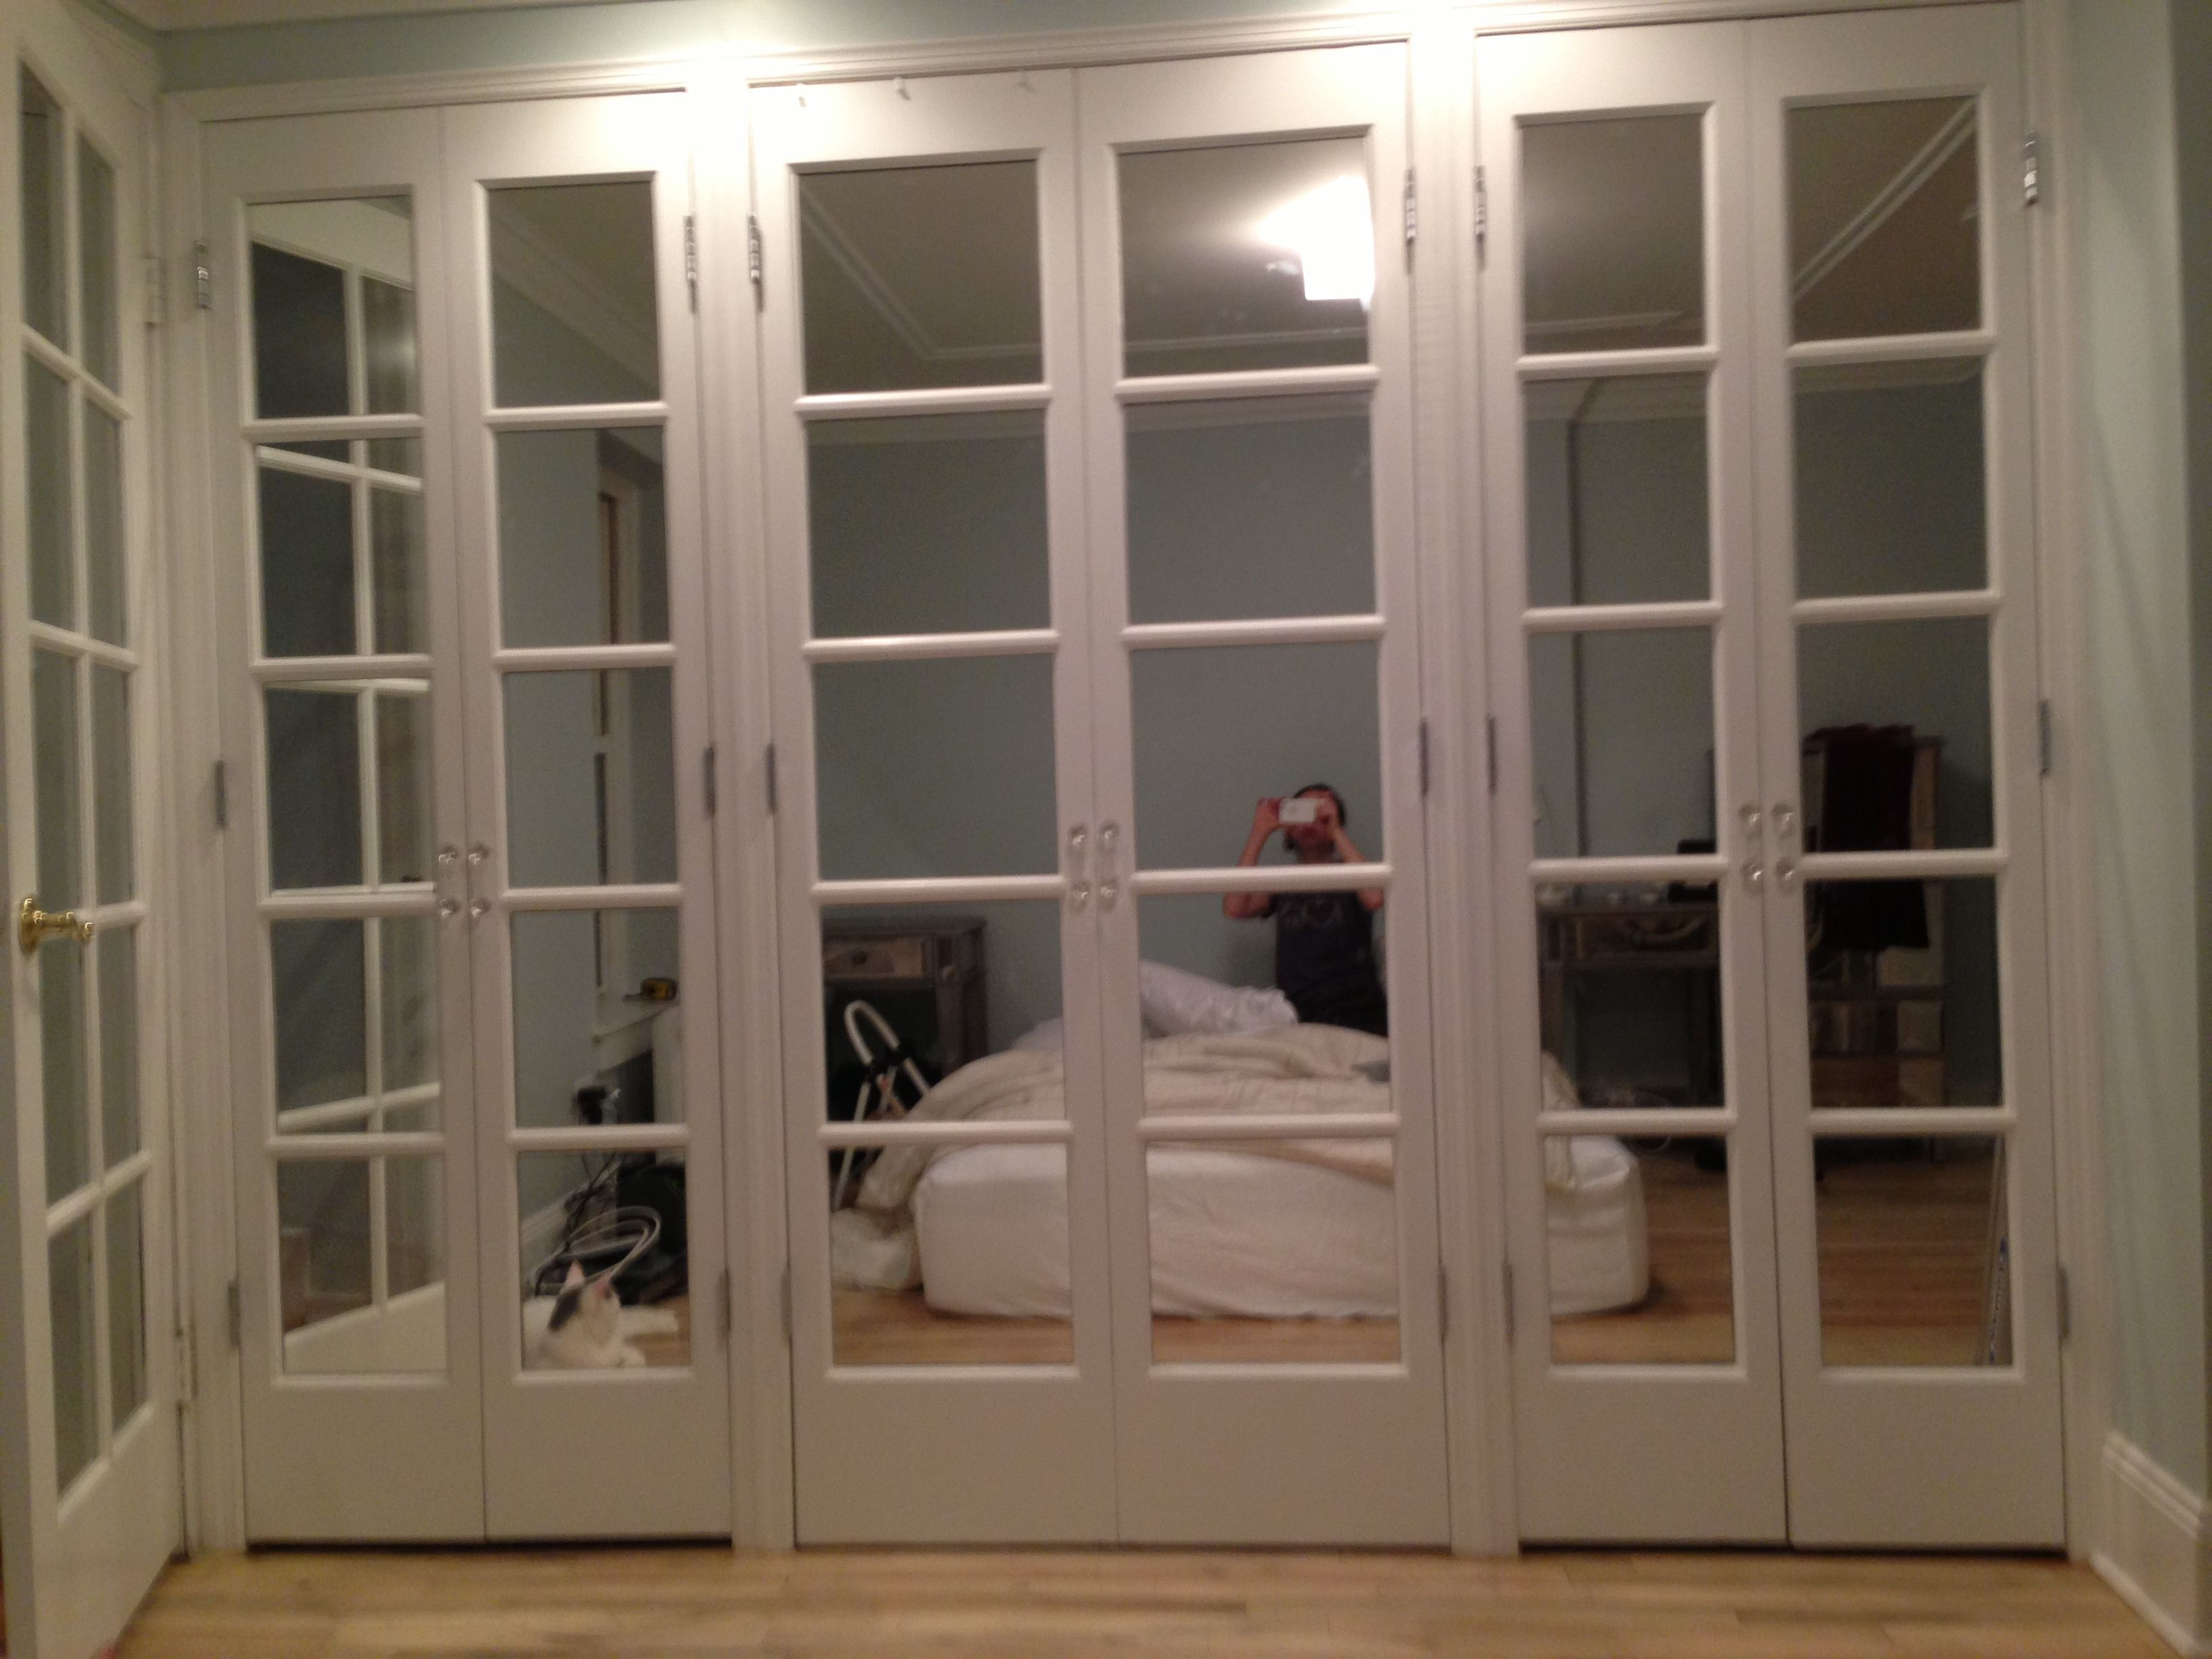 Mirrored French Doors In Bedroom French Country Decorating